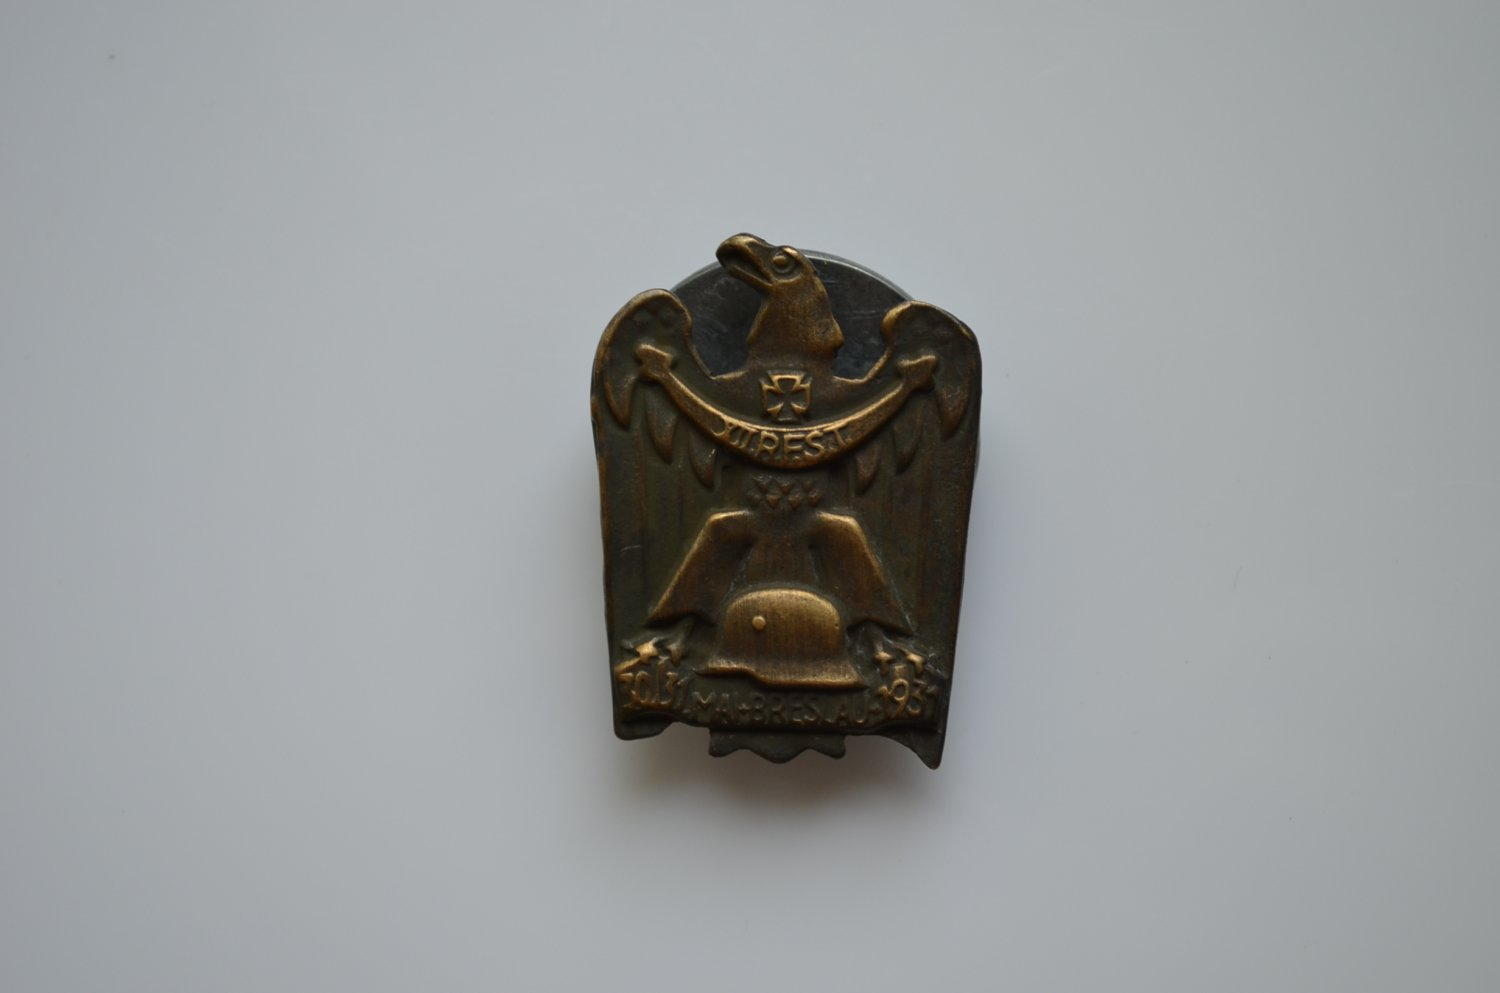 WWII GERMAN BADGE XII R.F.S.T 30/31 MAI BRESLAU 1931